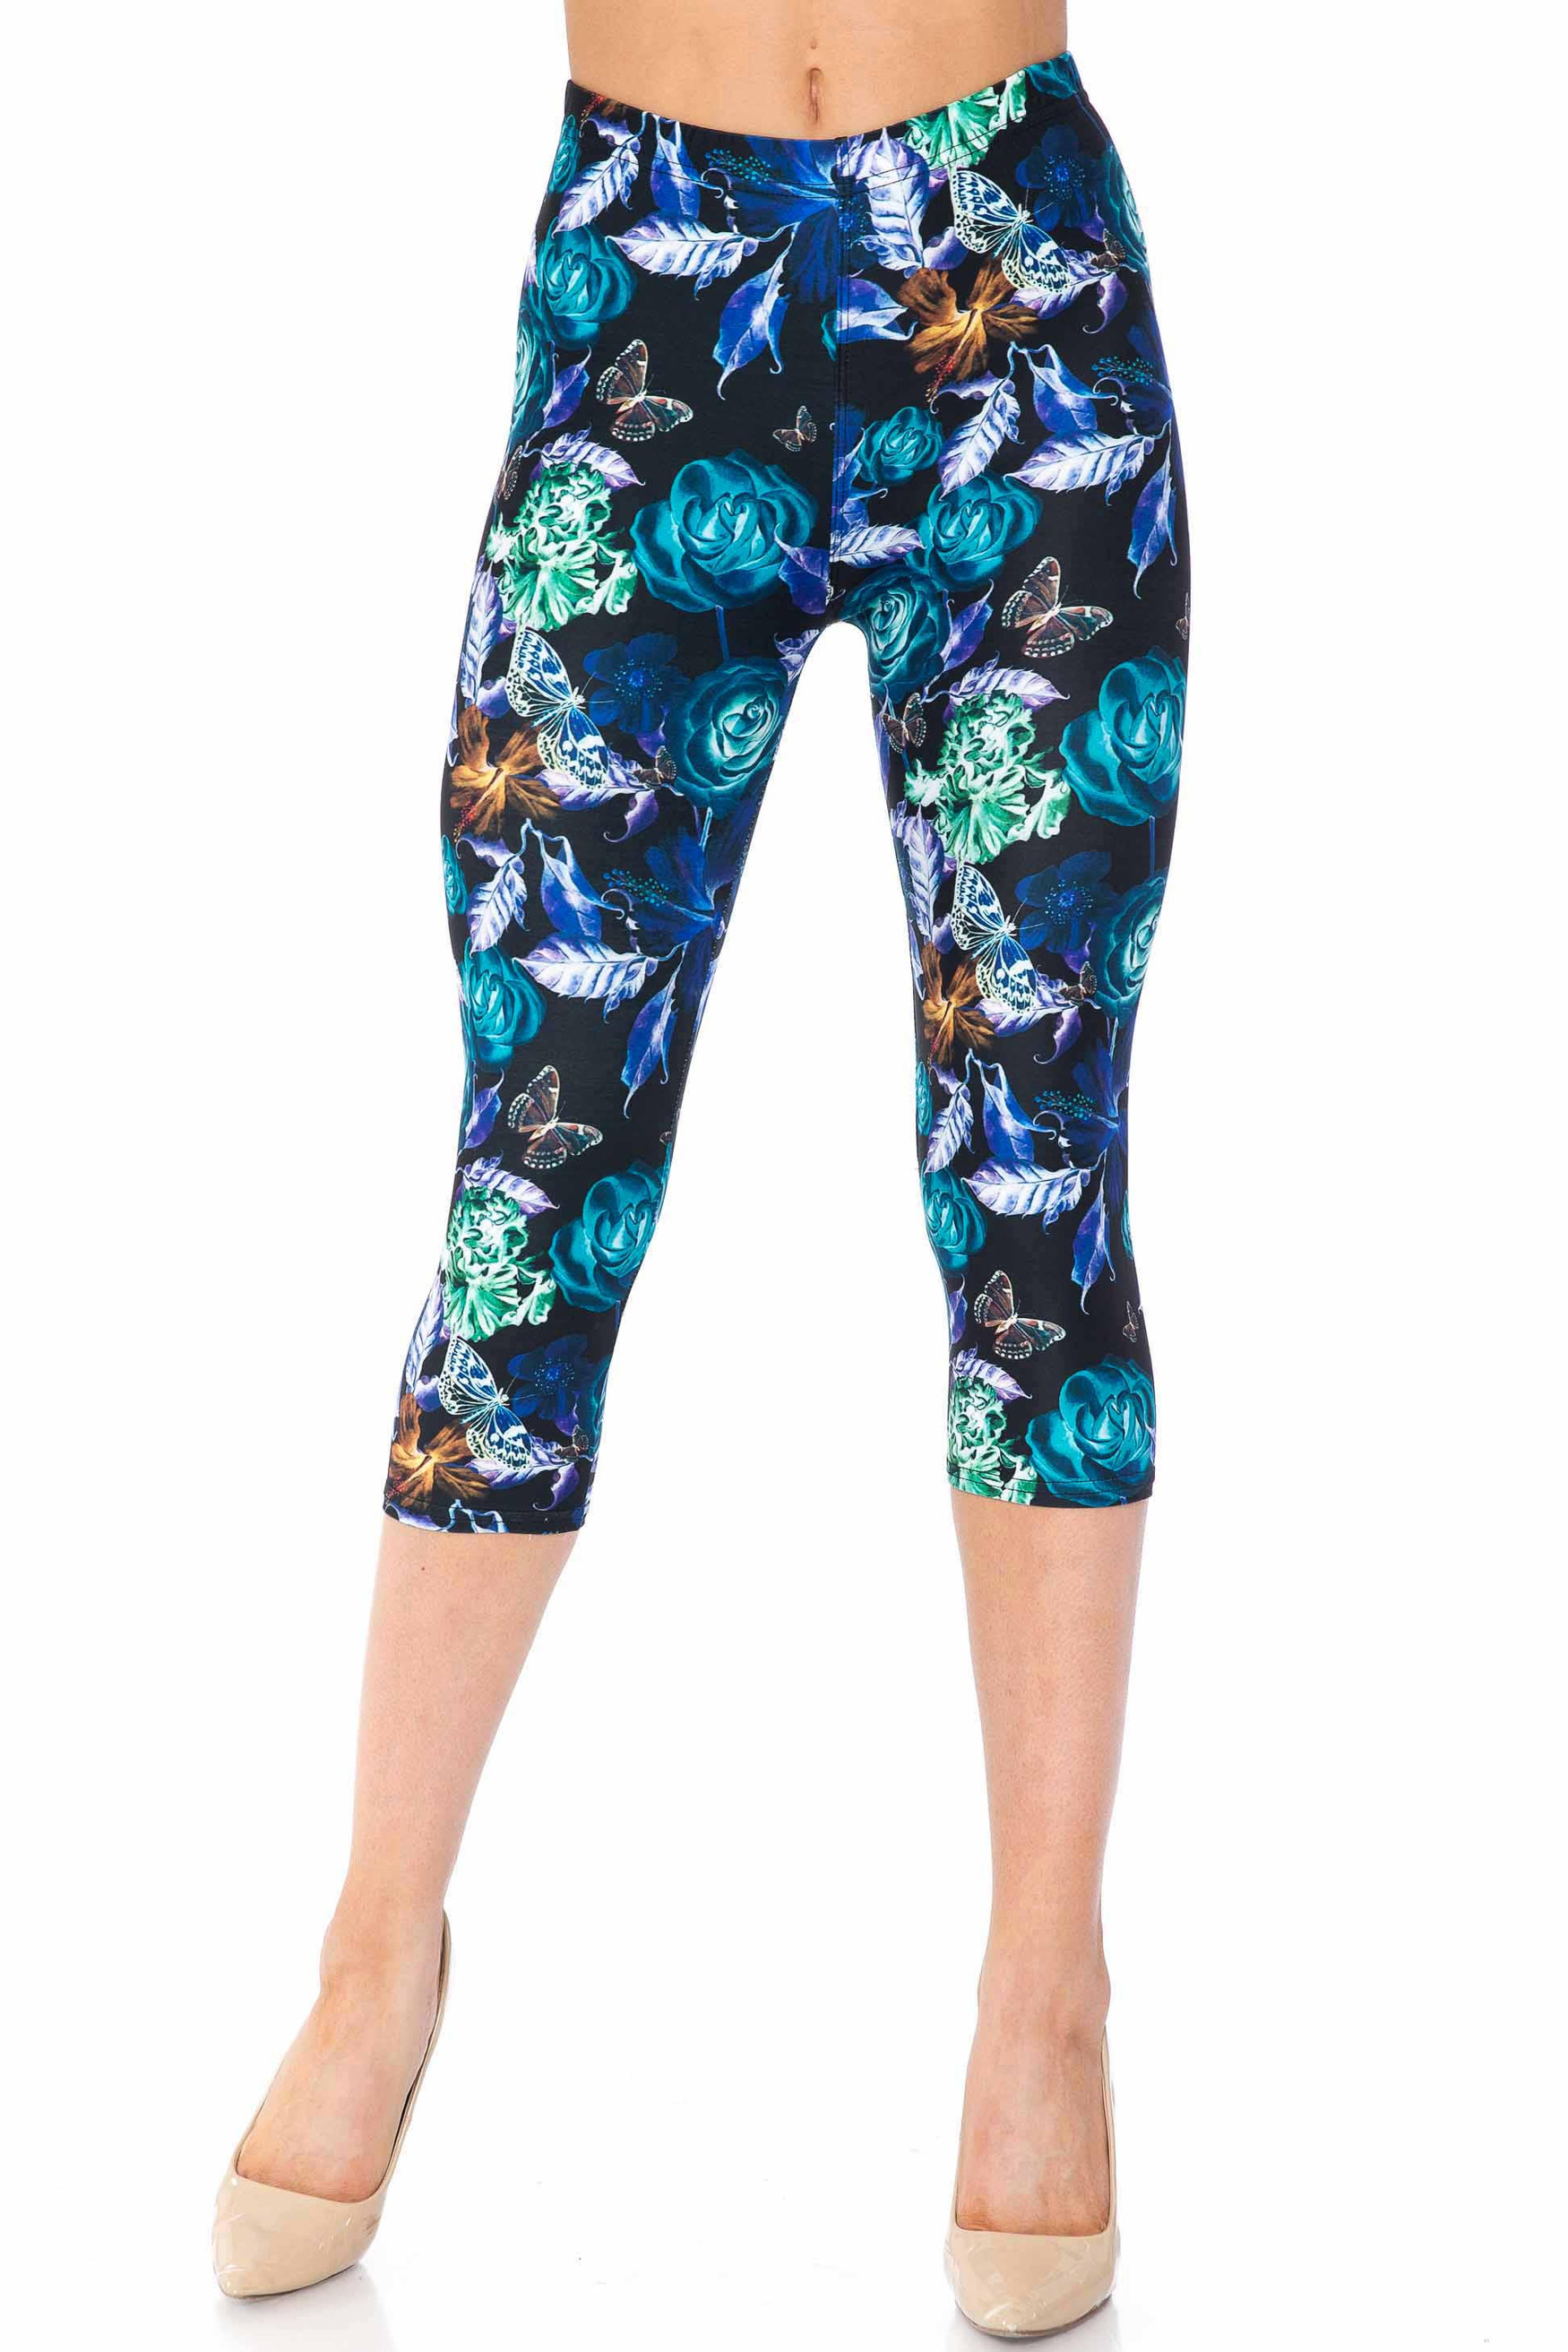 Creamy Soft Electric Blue Floral Butterfly Extra Plus Size Capris - 3X-5X - USA Fashion™